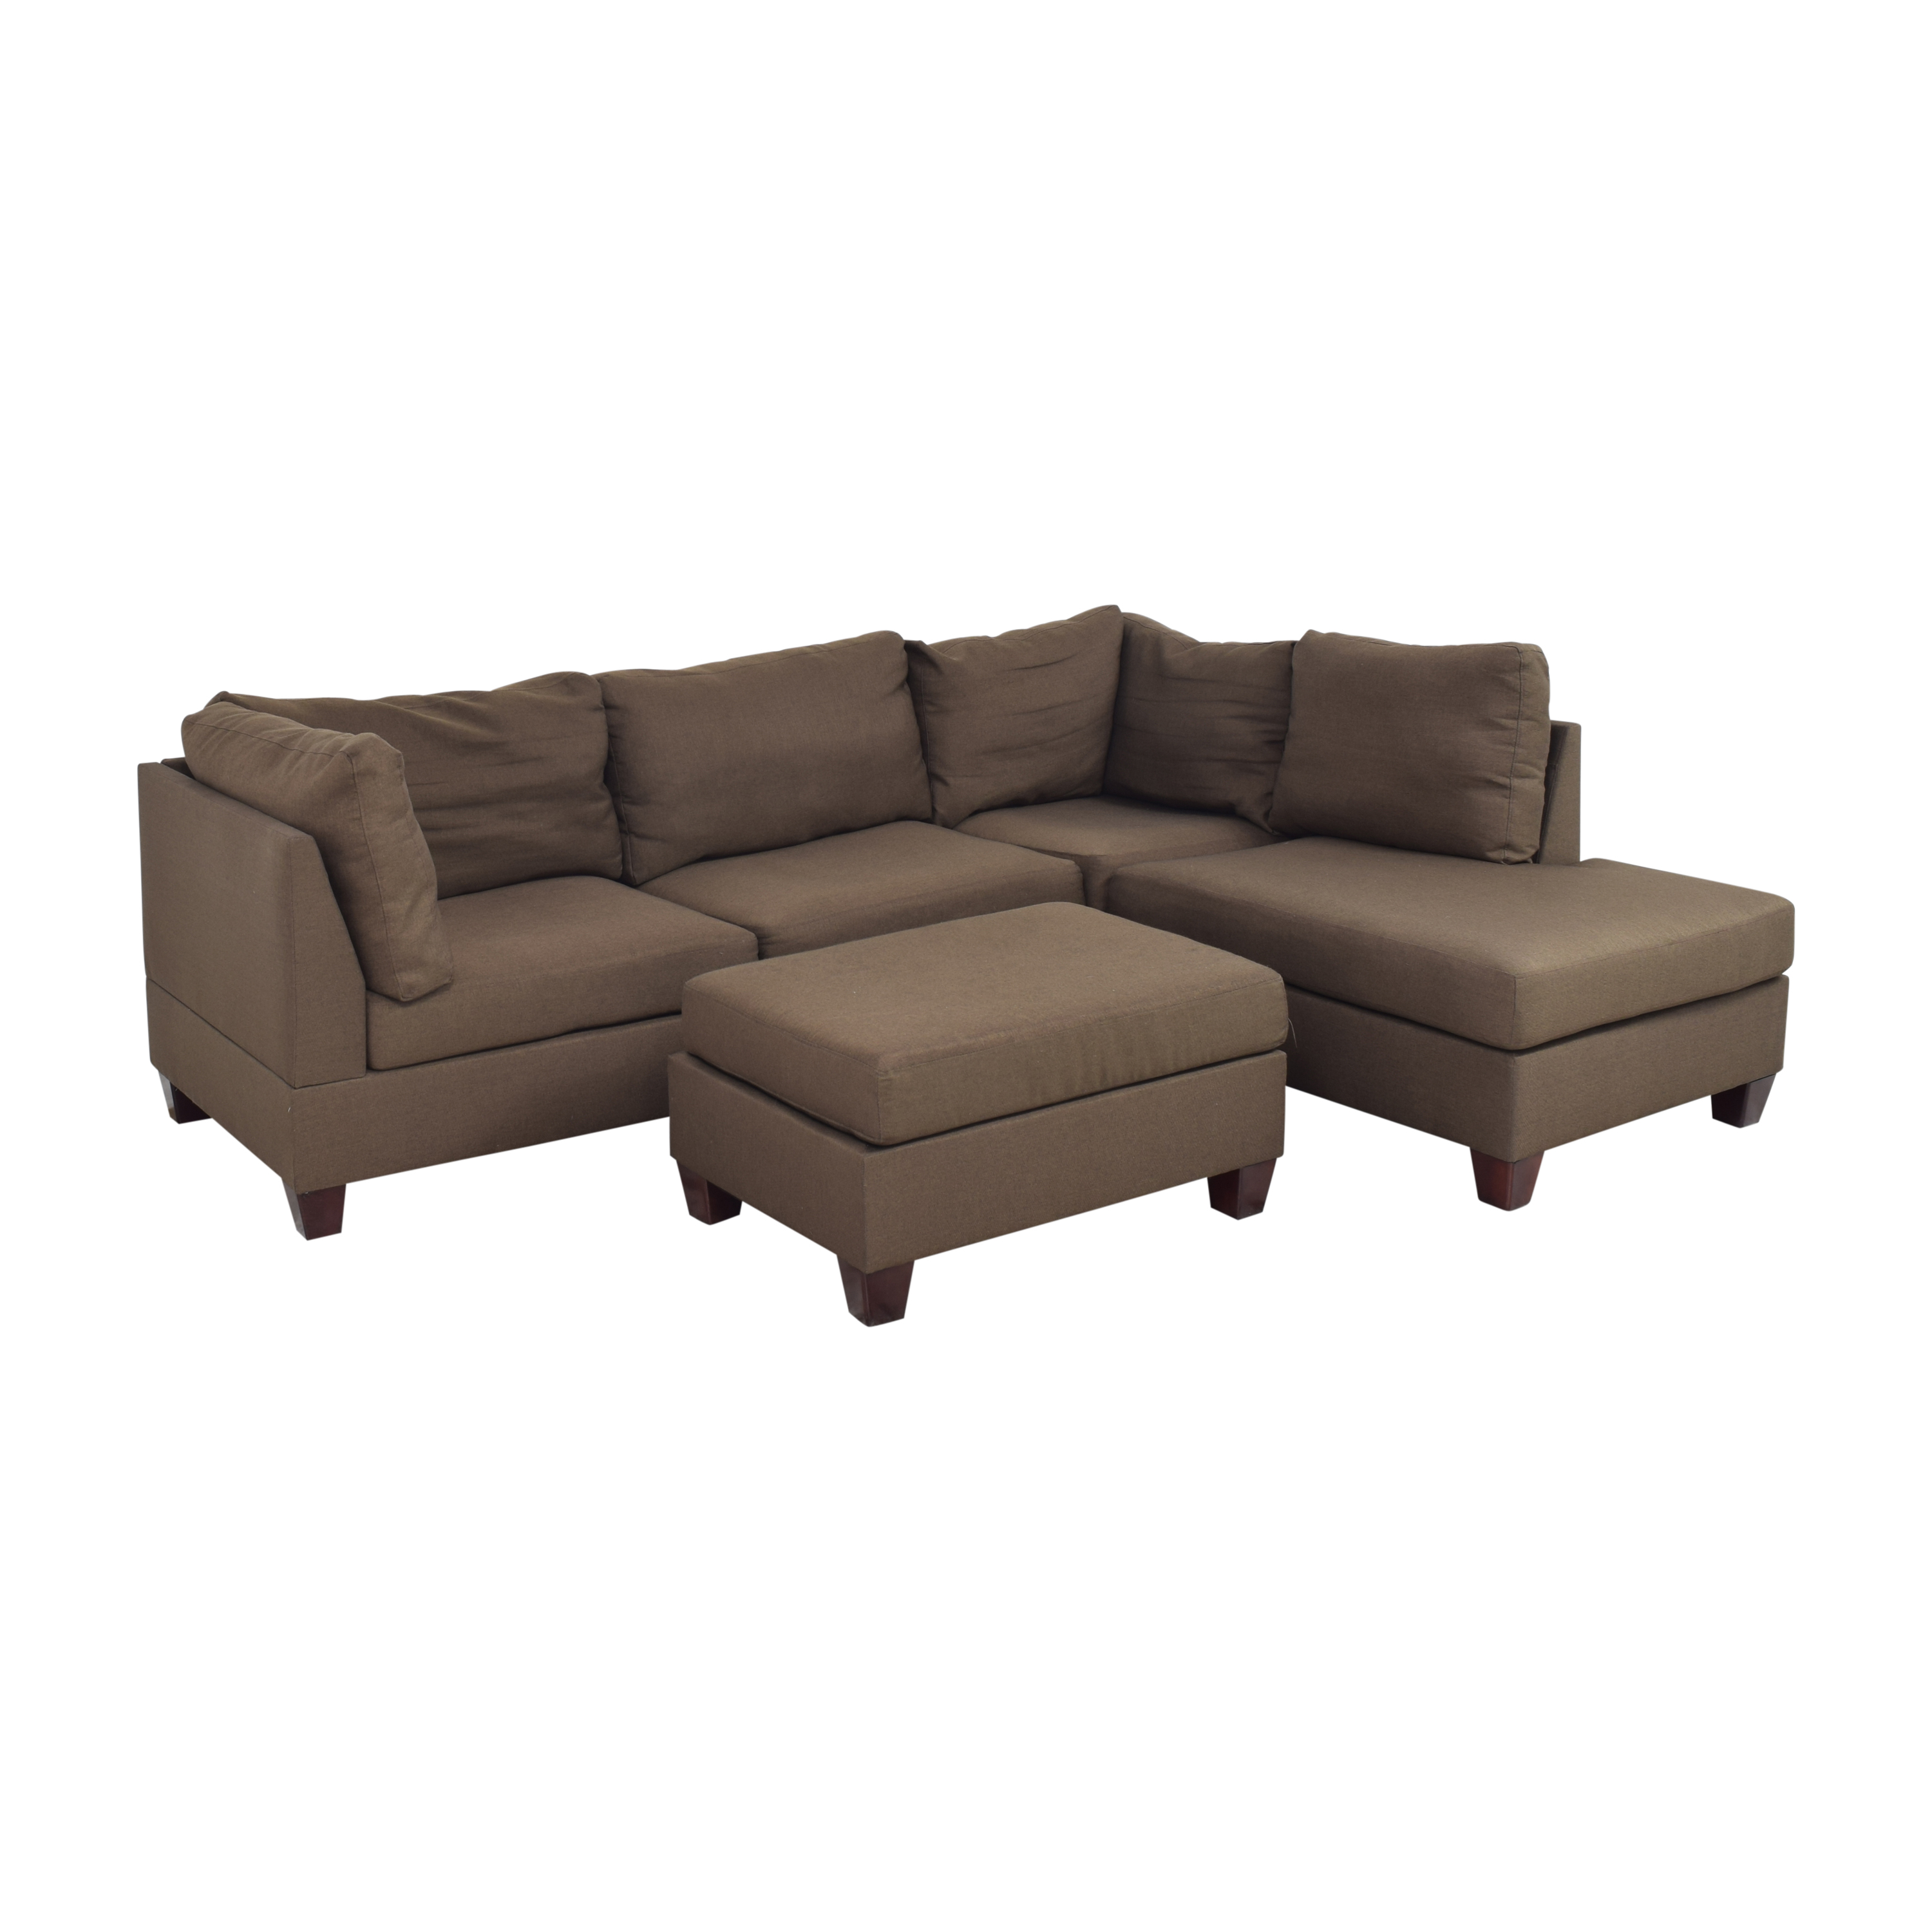 Wayfair Jacober Wide Reversible Chaise Sectional with Ottoman / Sectionals